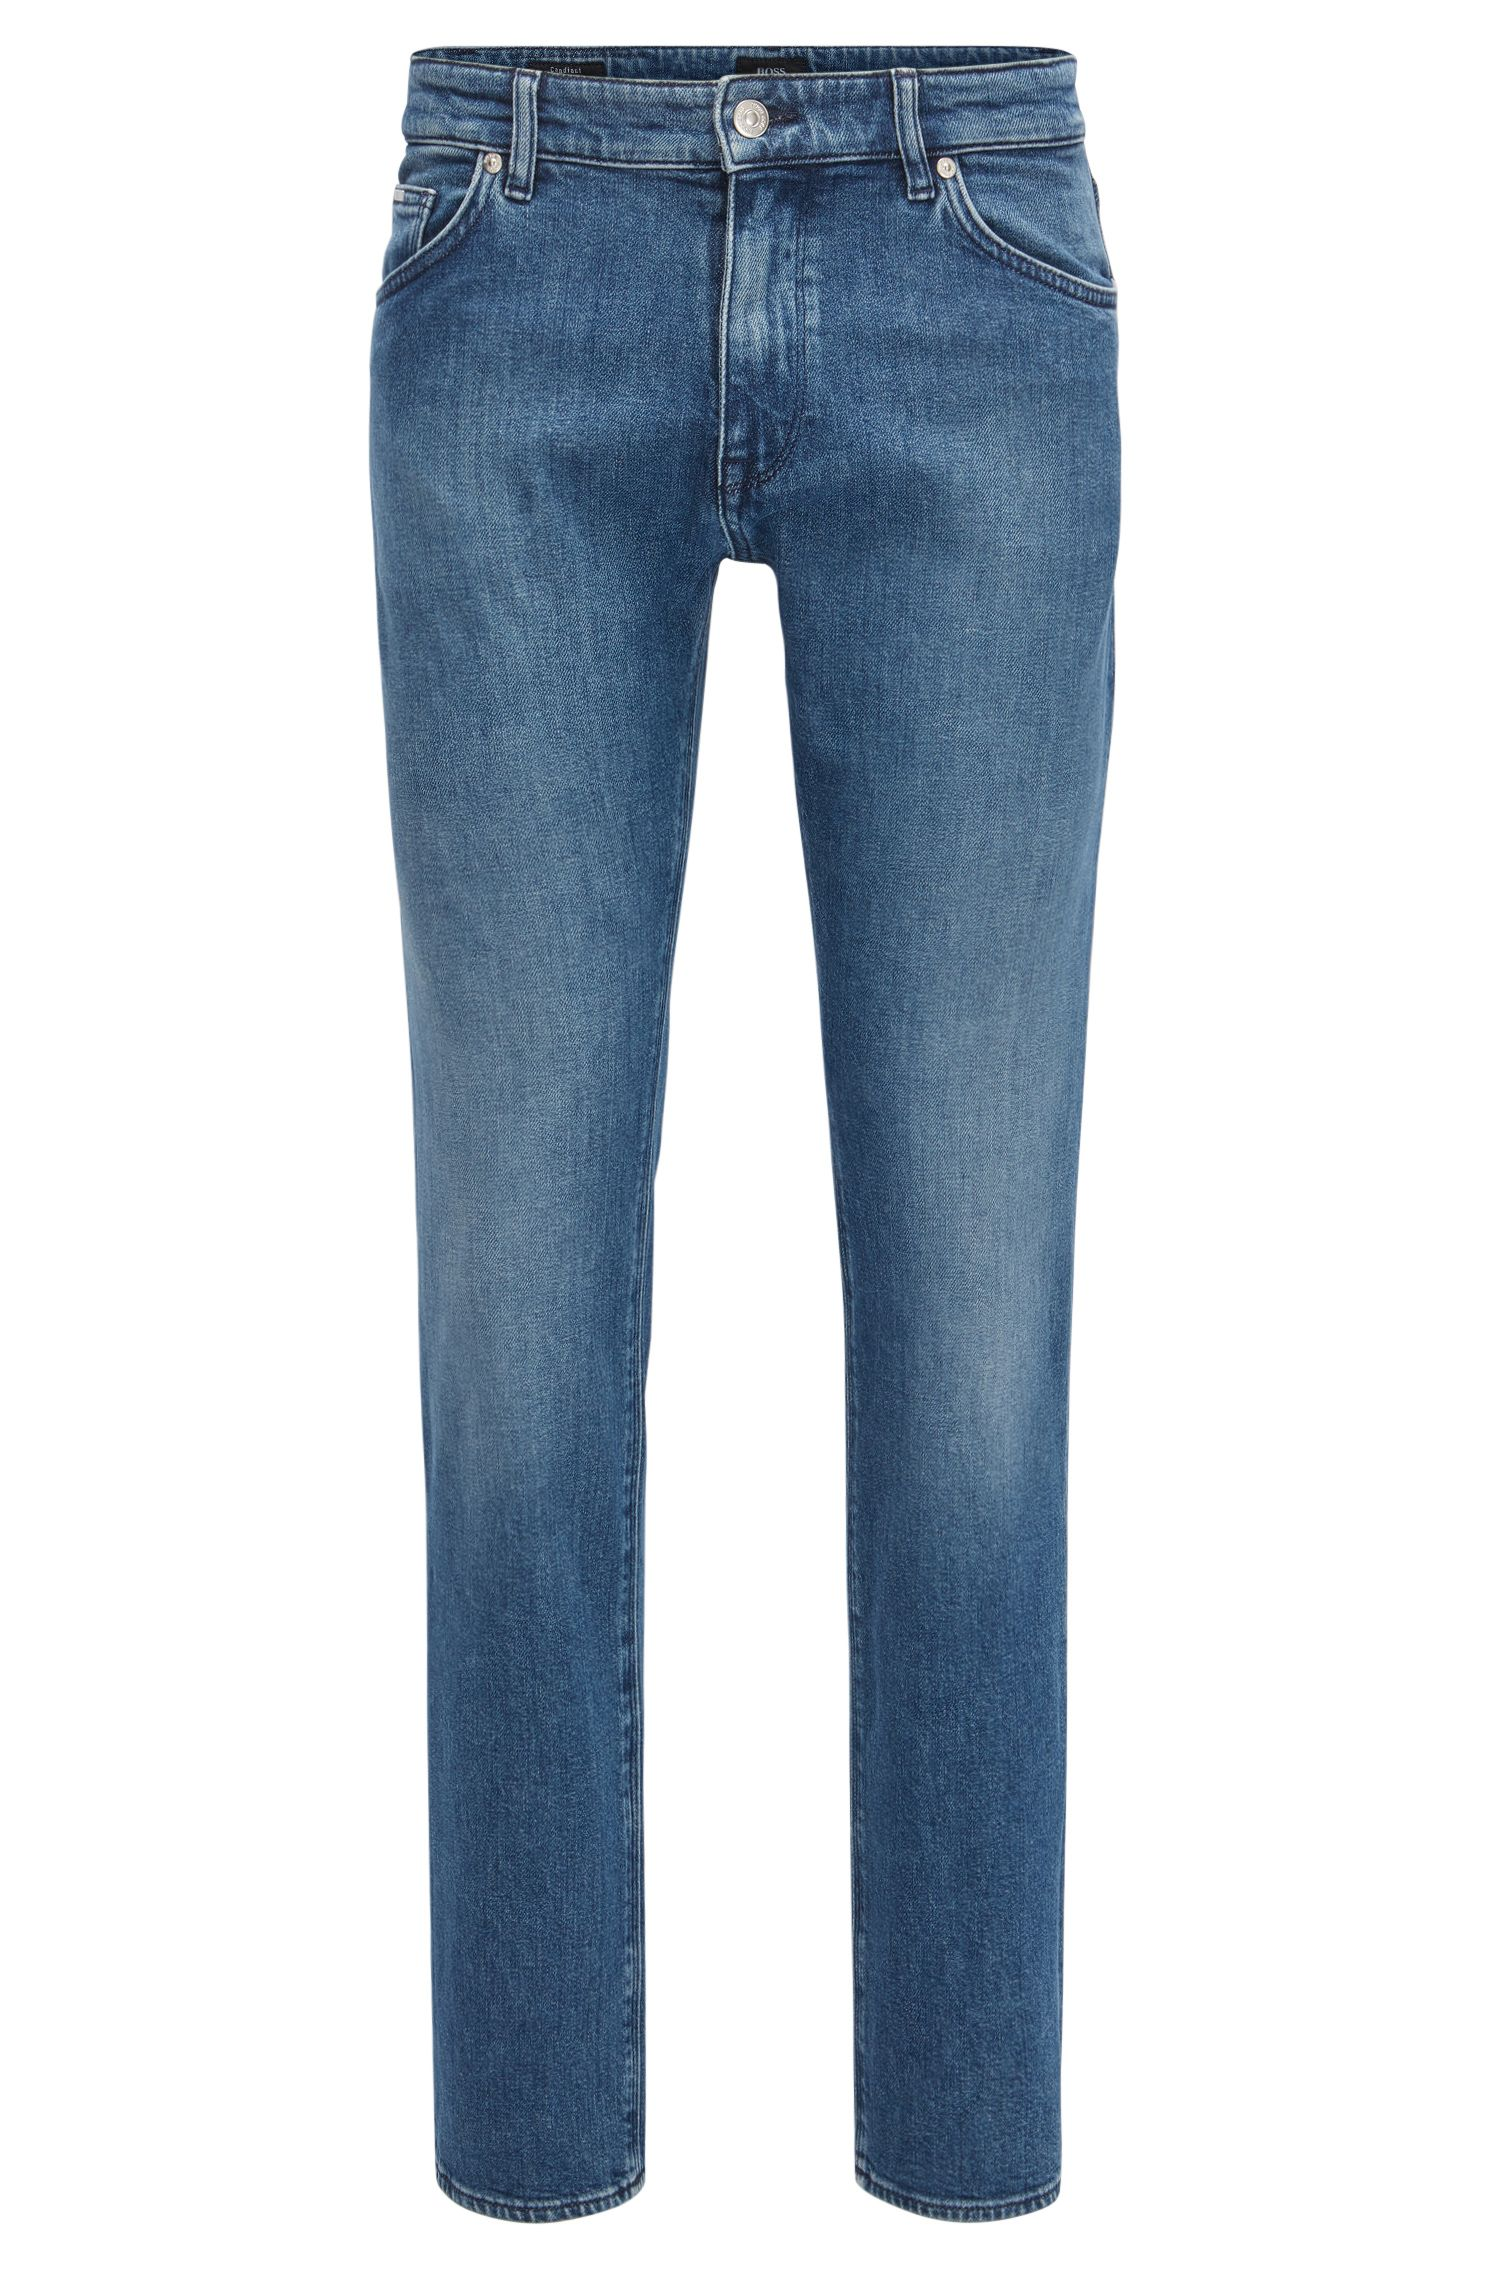 Dark-blue stretch-denim jeans in a regular fit